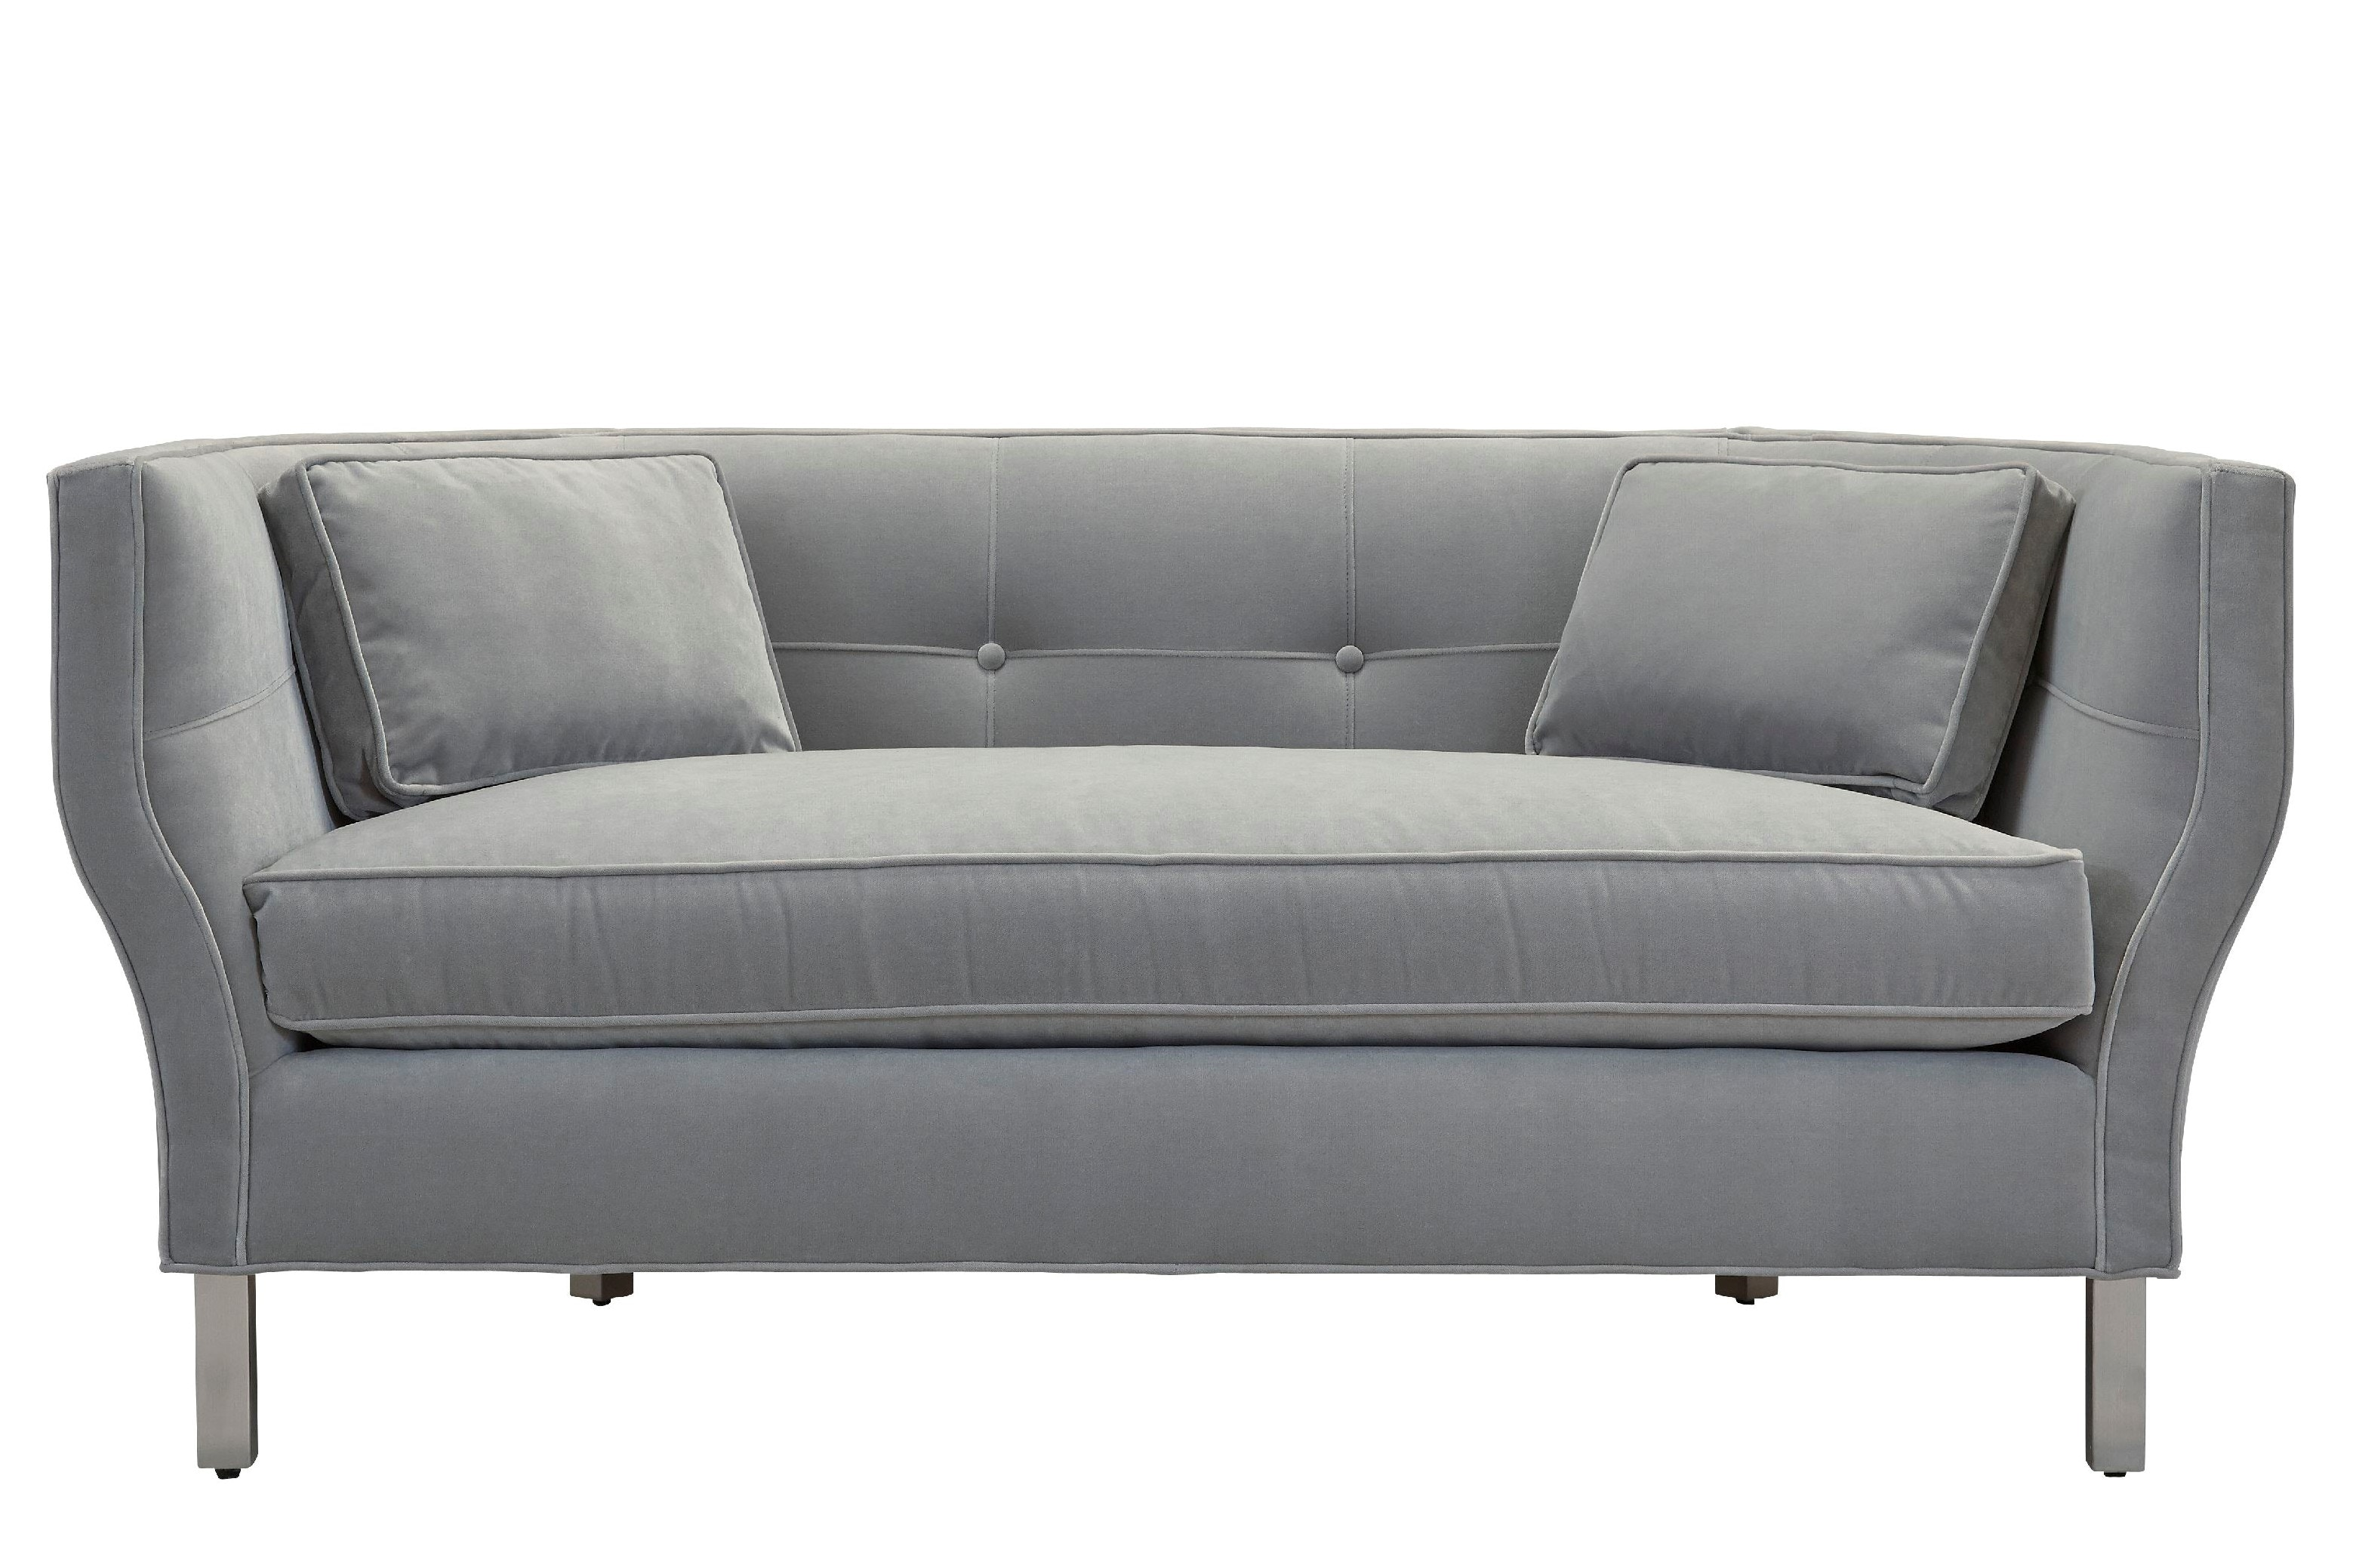 Southern Furniture Galloway Settee 35166